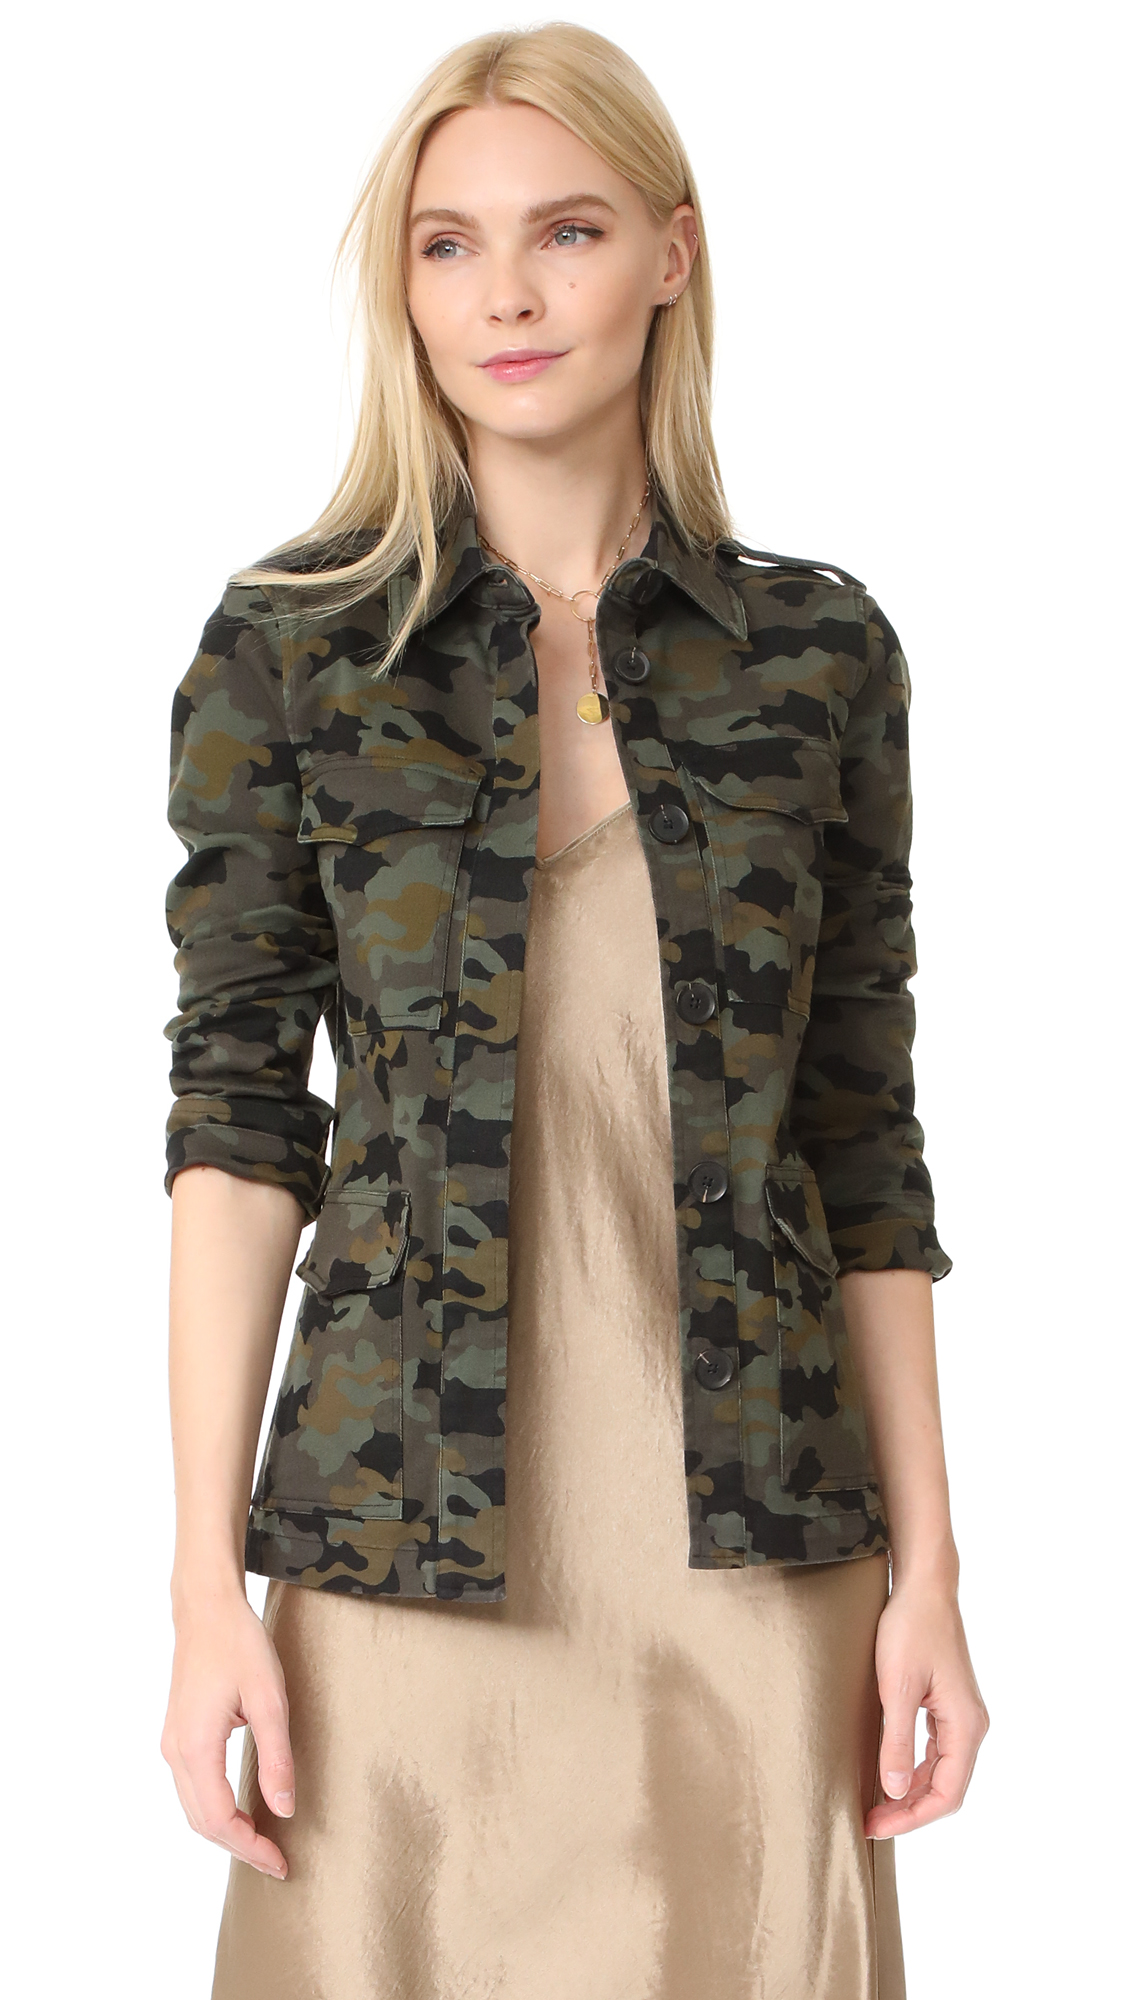 LAGENCE The Cromwell Military Jacket - Camo Multi